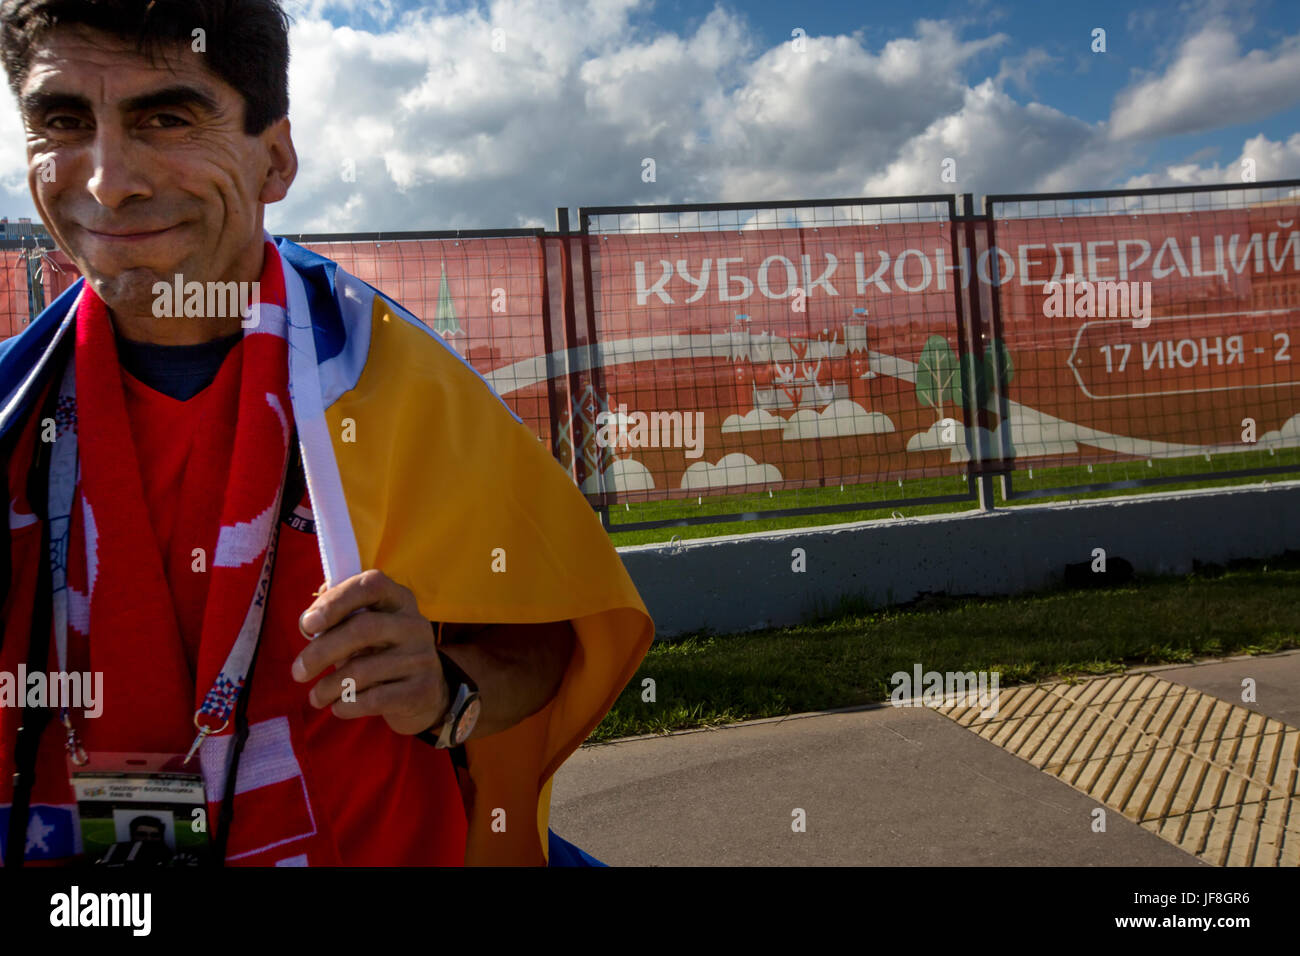 Fans of Chile's national team before start the match Chile and Australia on the 2017 FIFA Confederations Cup - Stock Image